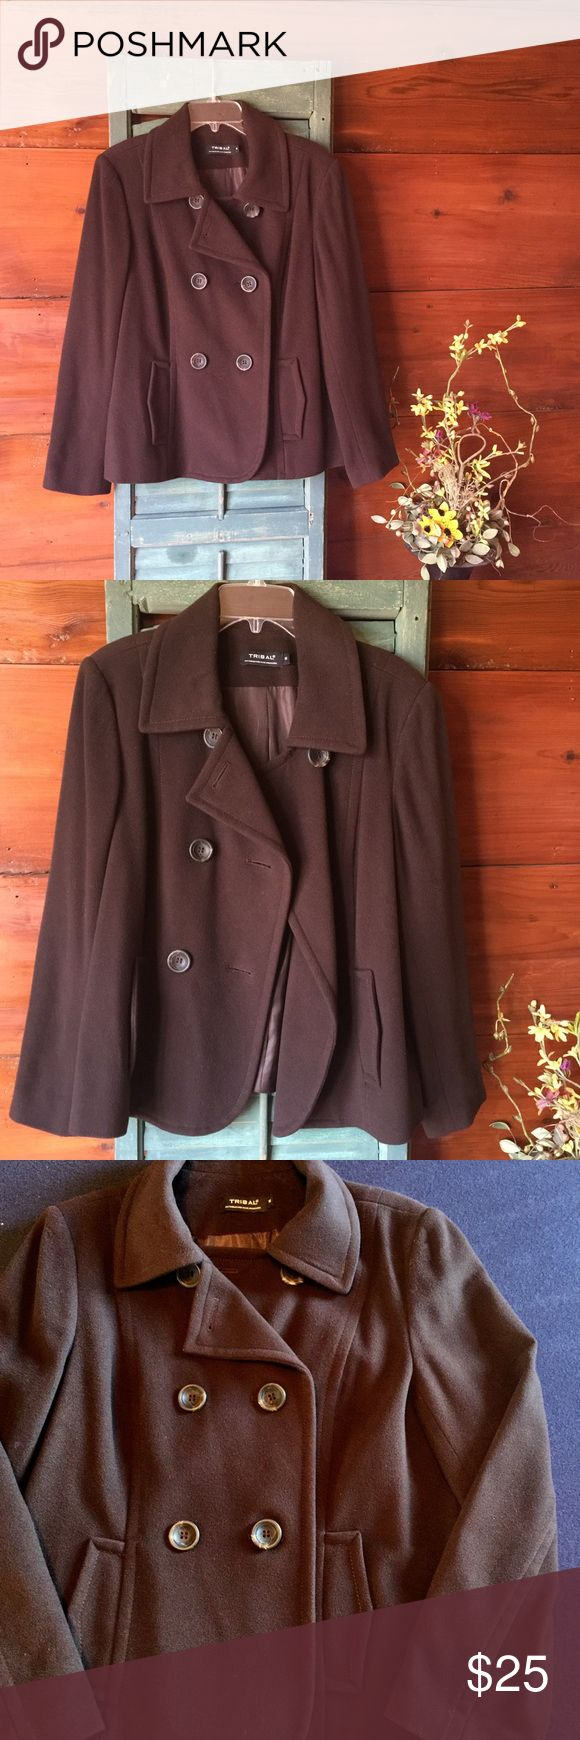 Women's Peacoat Classic Brown Women's Peacoat. Great condition. Double buttons, fully lined. Tribal Jackets & Coats Pea Coats